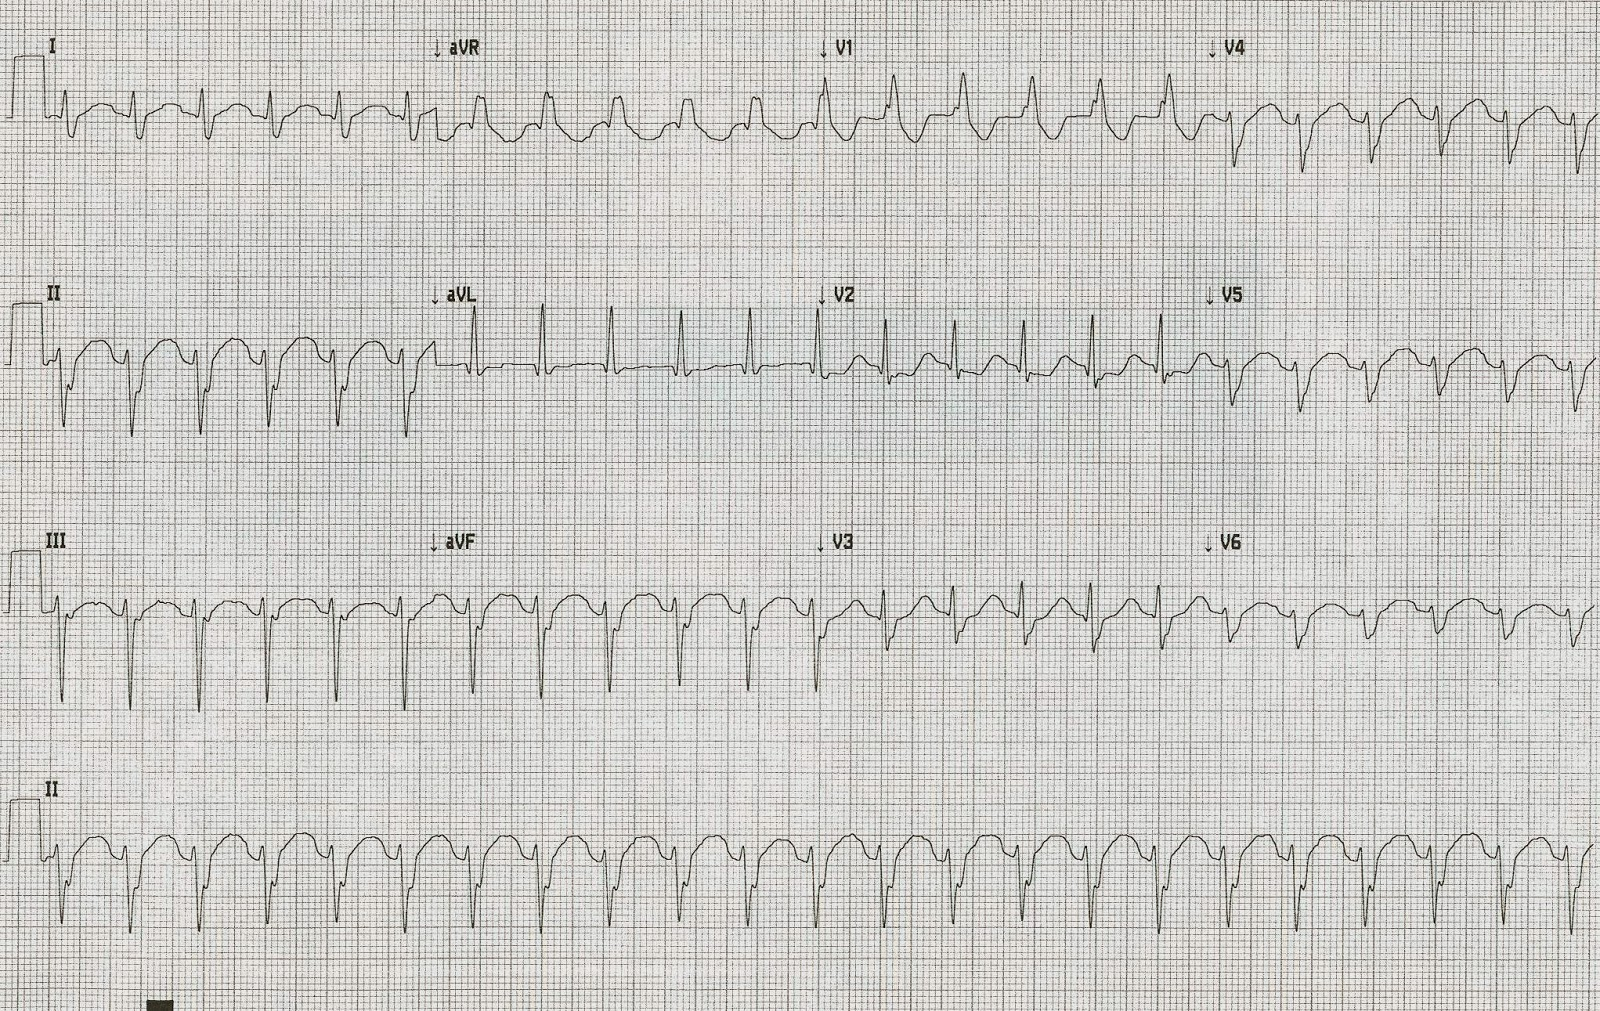 Ecg Signs Of Hypercalcemia And Hypocalcemia May Not Be Obvious